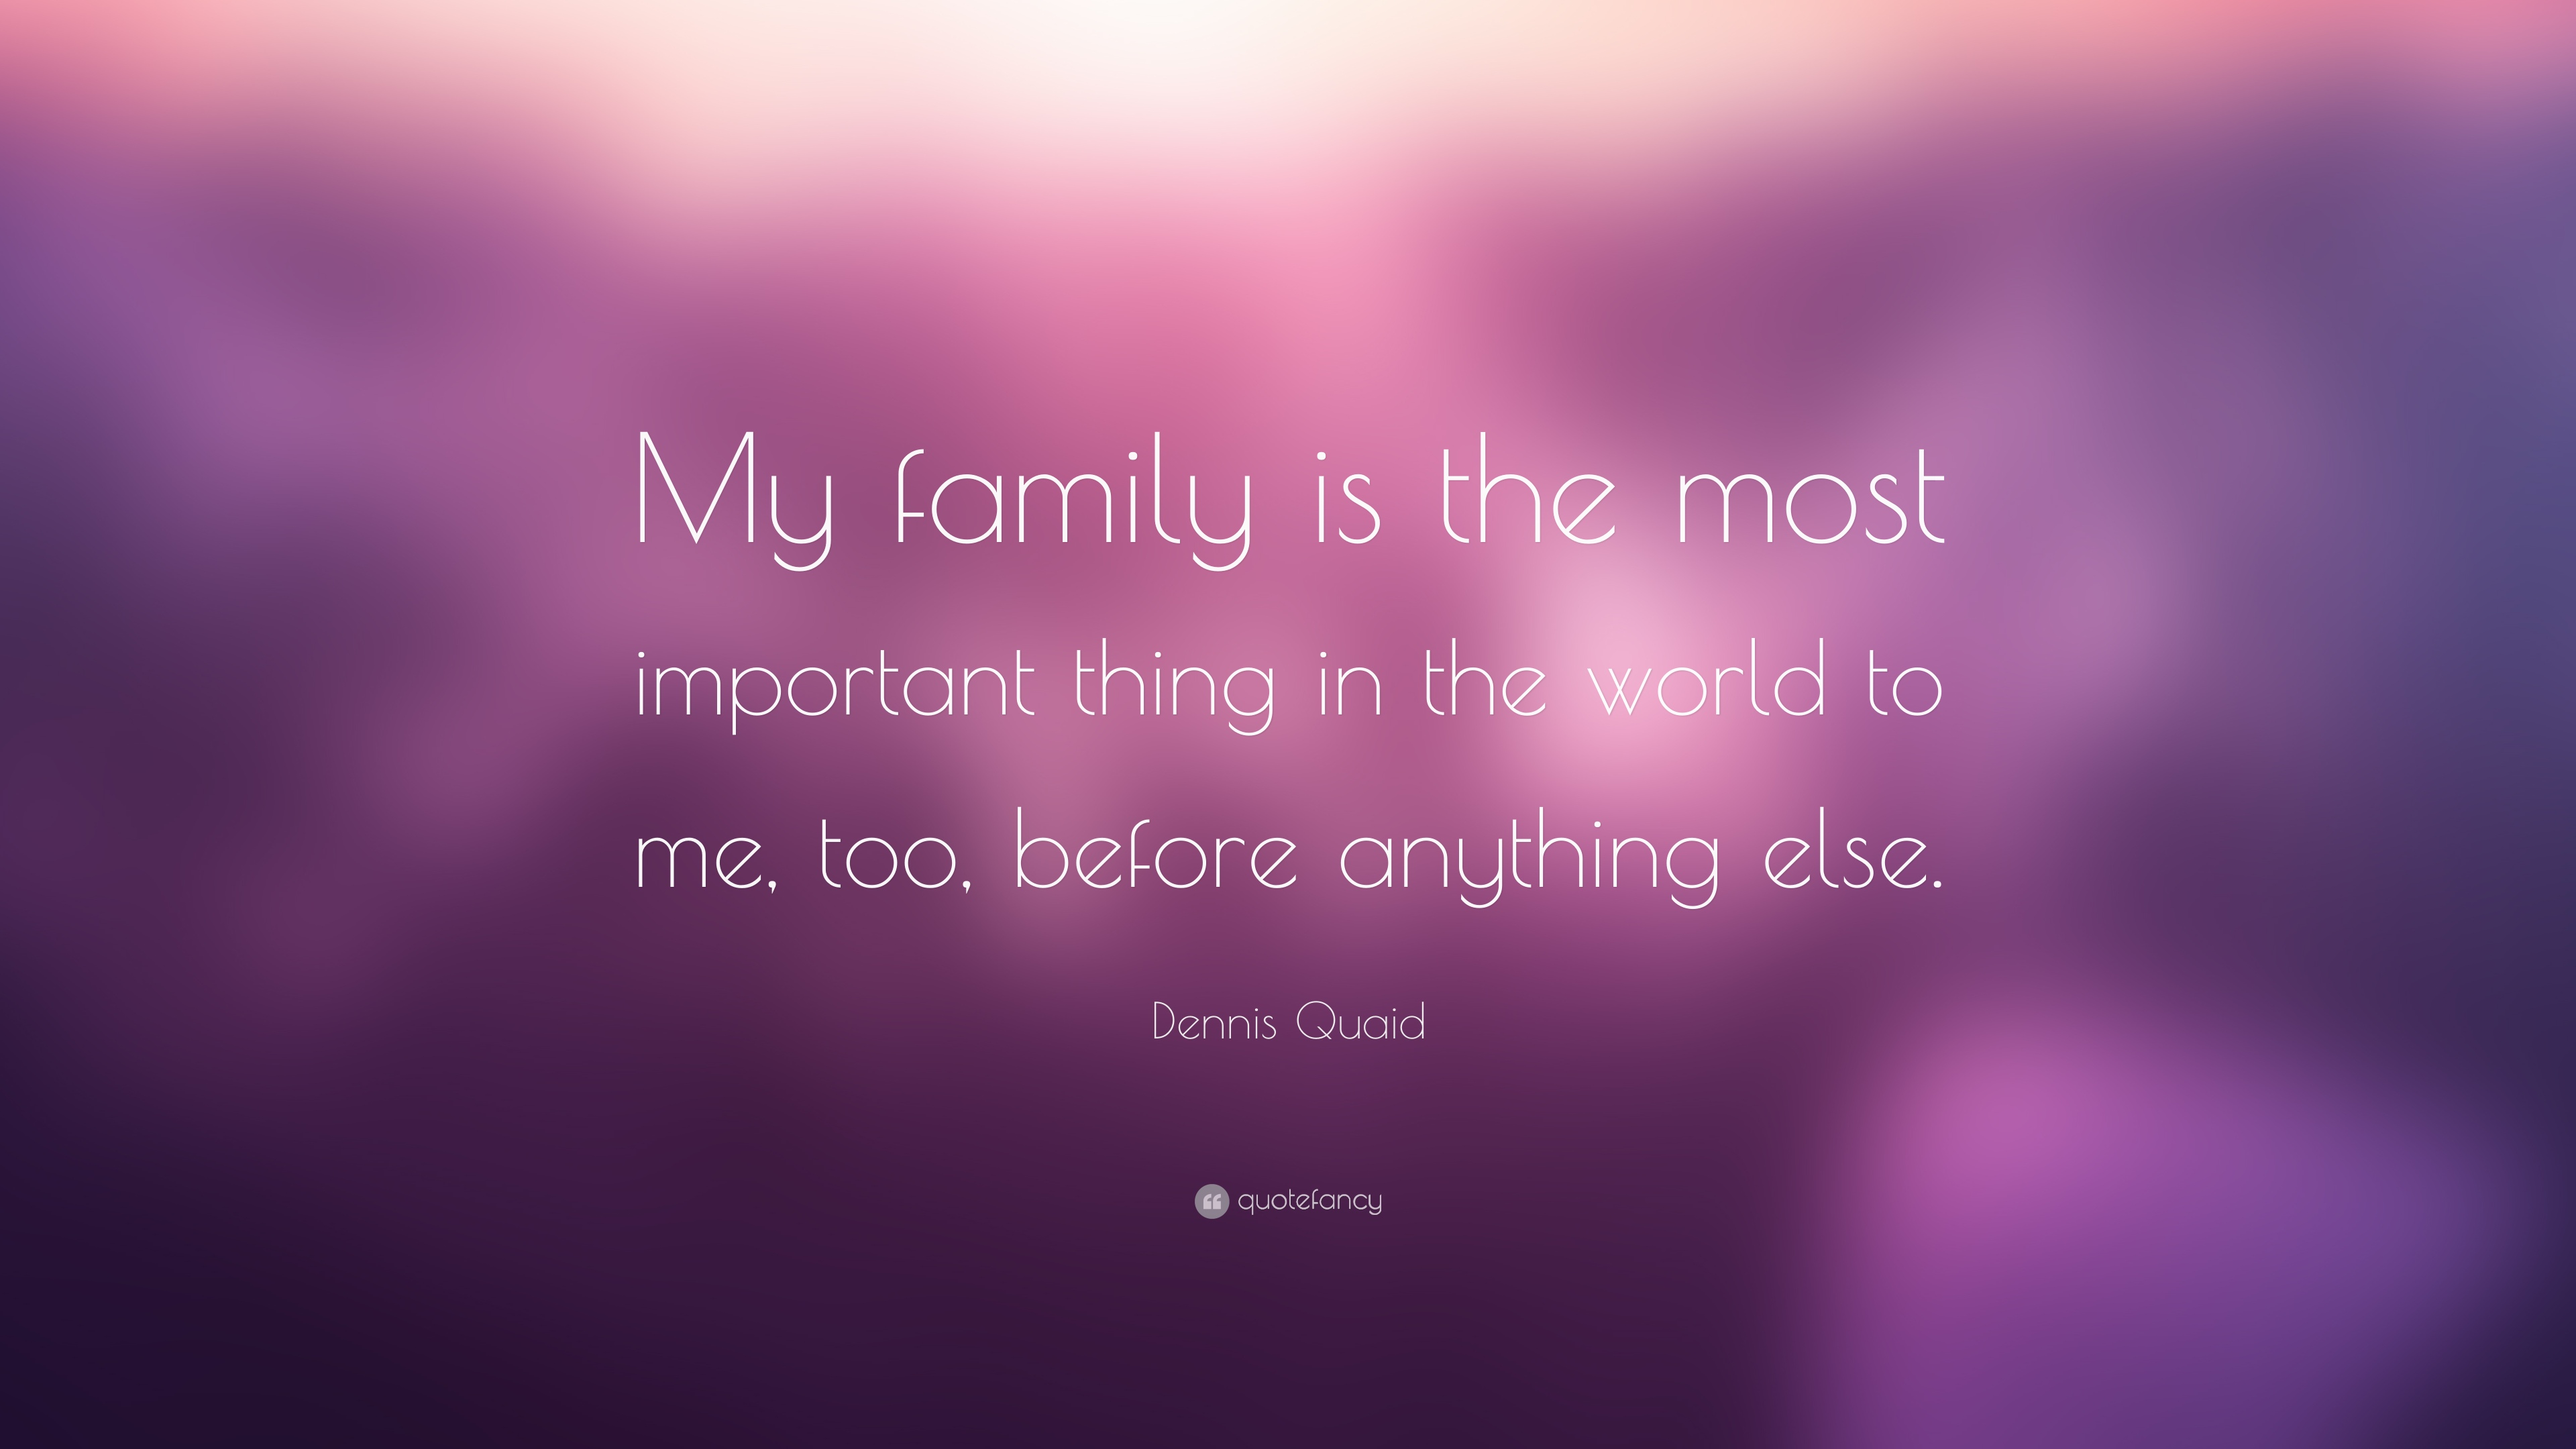 Dennis Quaid Quote My Family Is The Most Important Thing In The